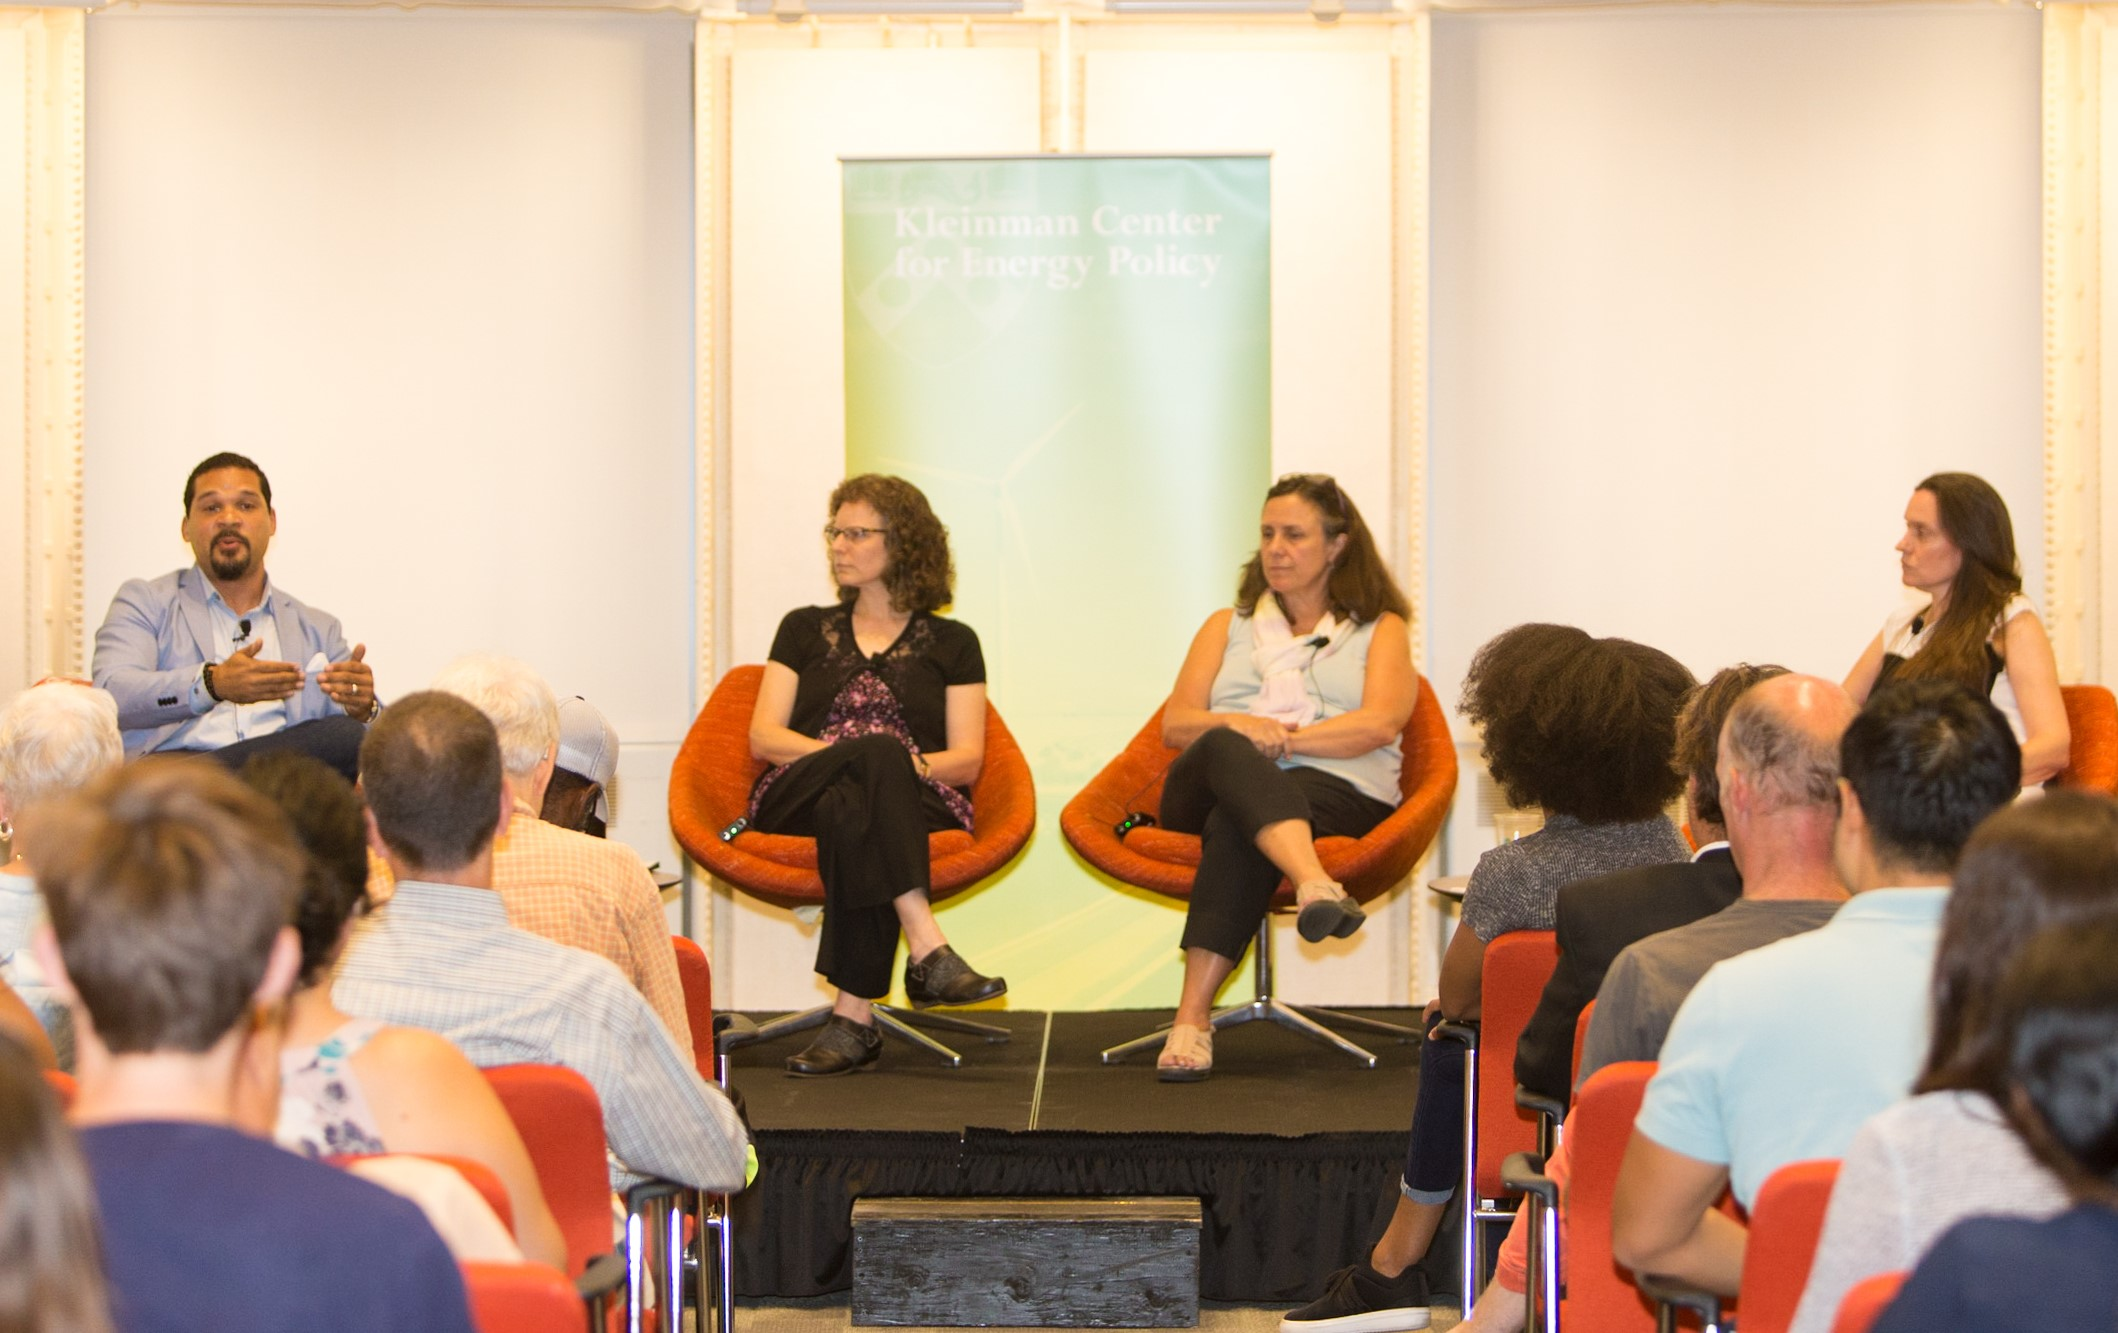 StateImpact Pennsylvania reporter Susan Phillips, right, moderates a panel on climate change adaptation, resilience, and social equity Thursday, Sept. 12 at the University of Pennsylvania's Kleinman Center for Energy Policy. Panelists are, from left, Charles D. Ellison, managing editor of ecoWURD.com; climate activist Tanya Seaman; and Jeanne Herb, climate researcher at Rutgers University.